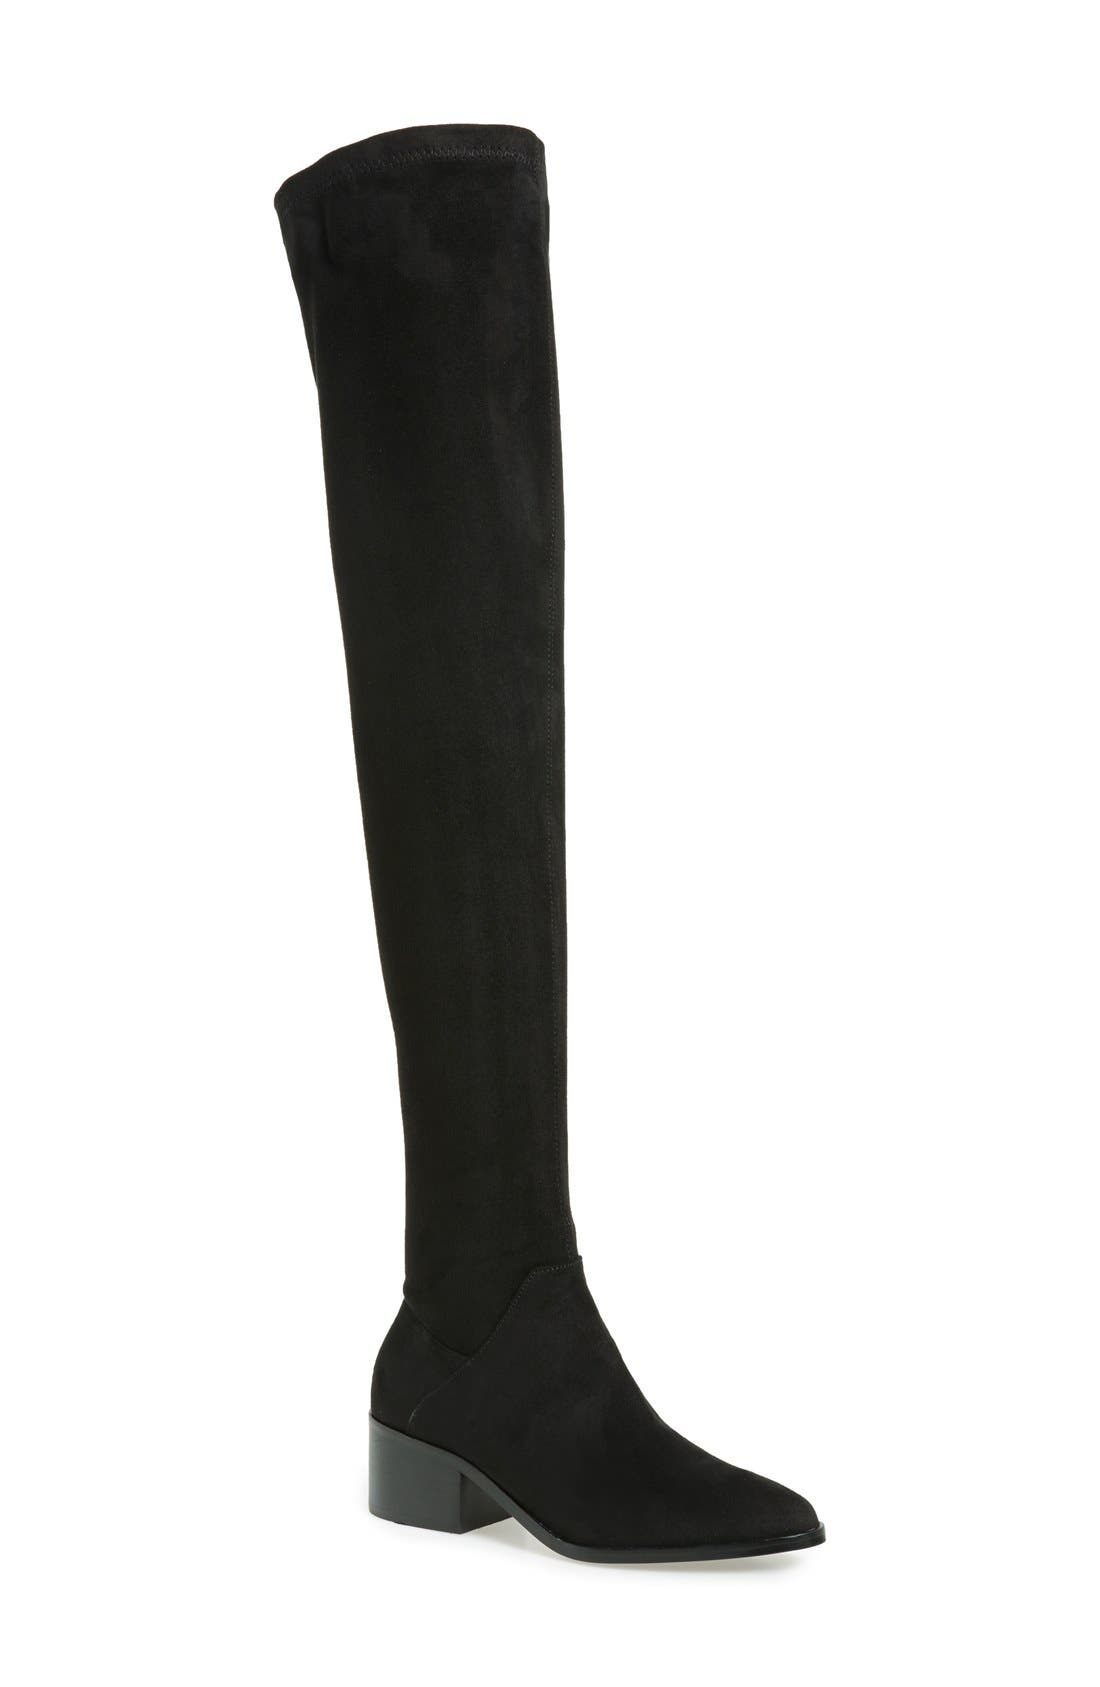 STEVE MADDEN Gabriana Stretch Over the Knee Boot